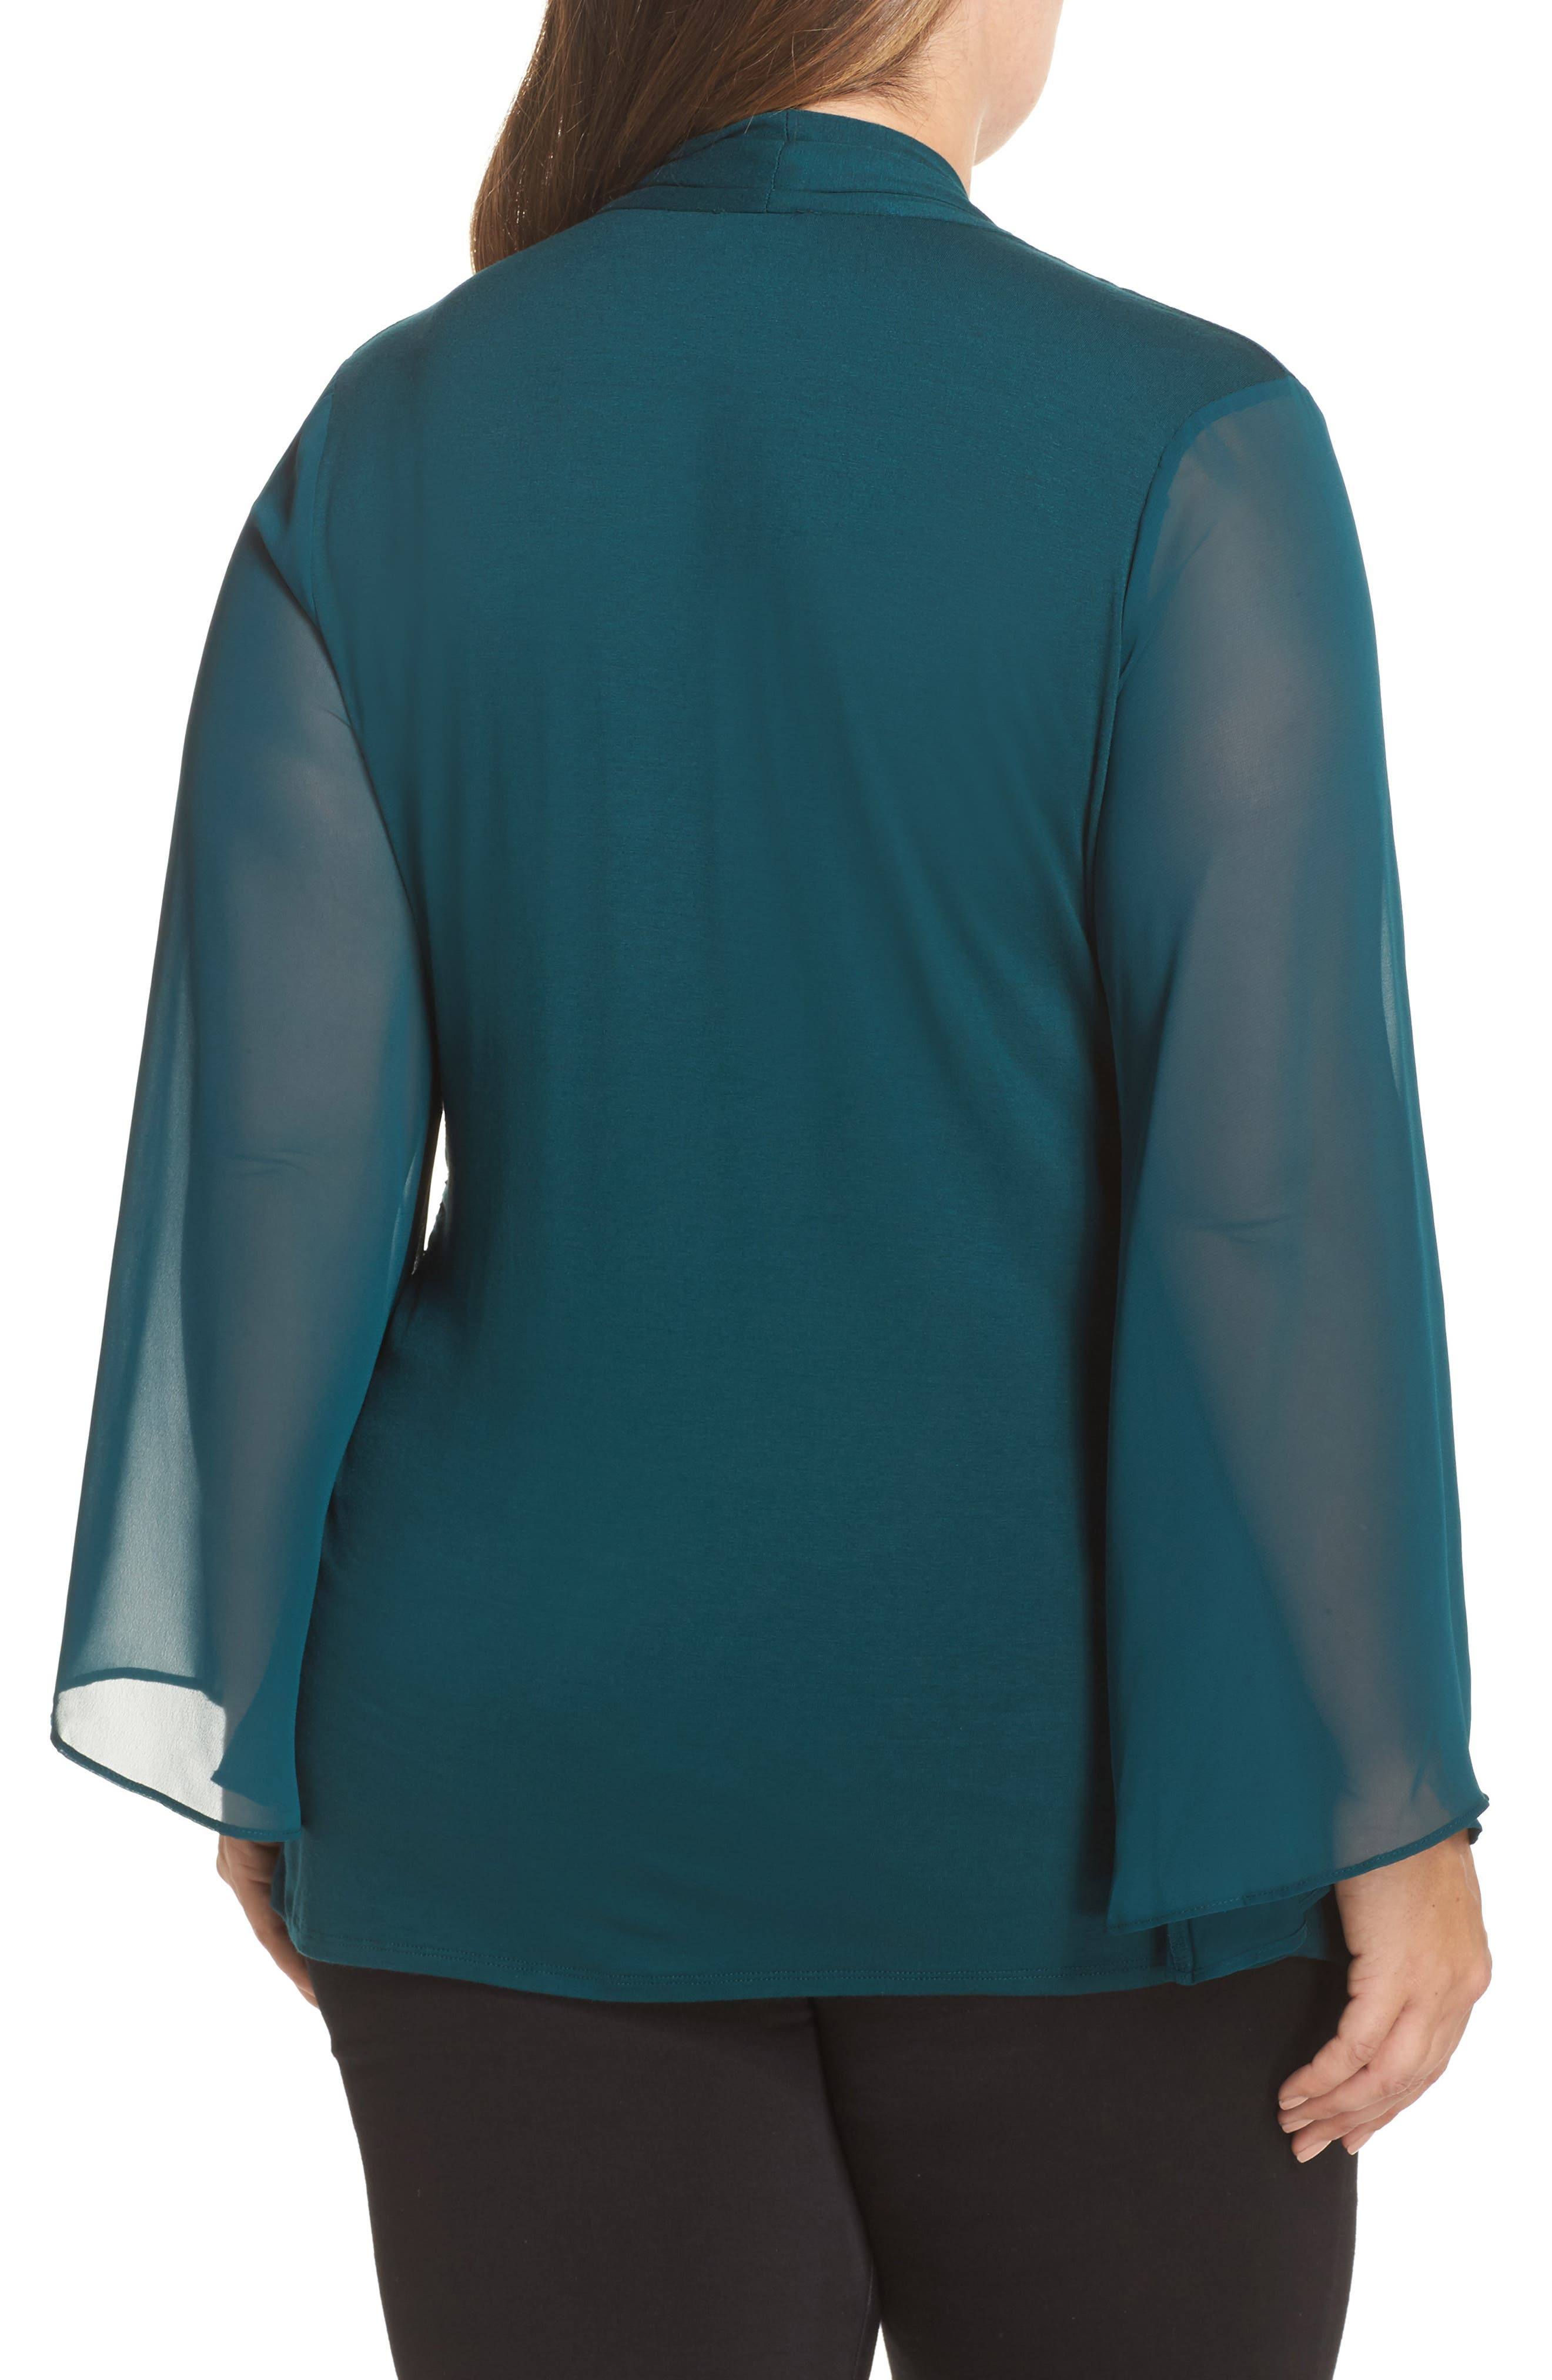 Alternate Image 2  - Vince Camuto Ruched Bell Sleeve Chiffon Blouse (Plus Size)